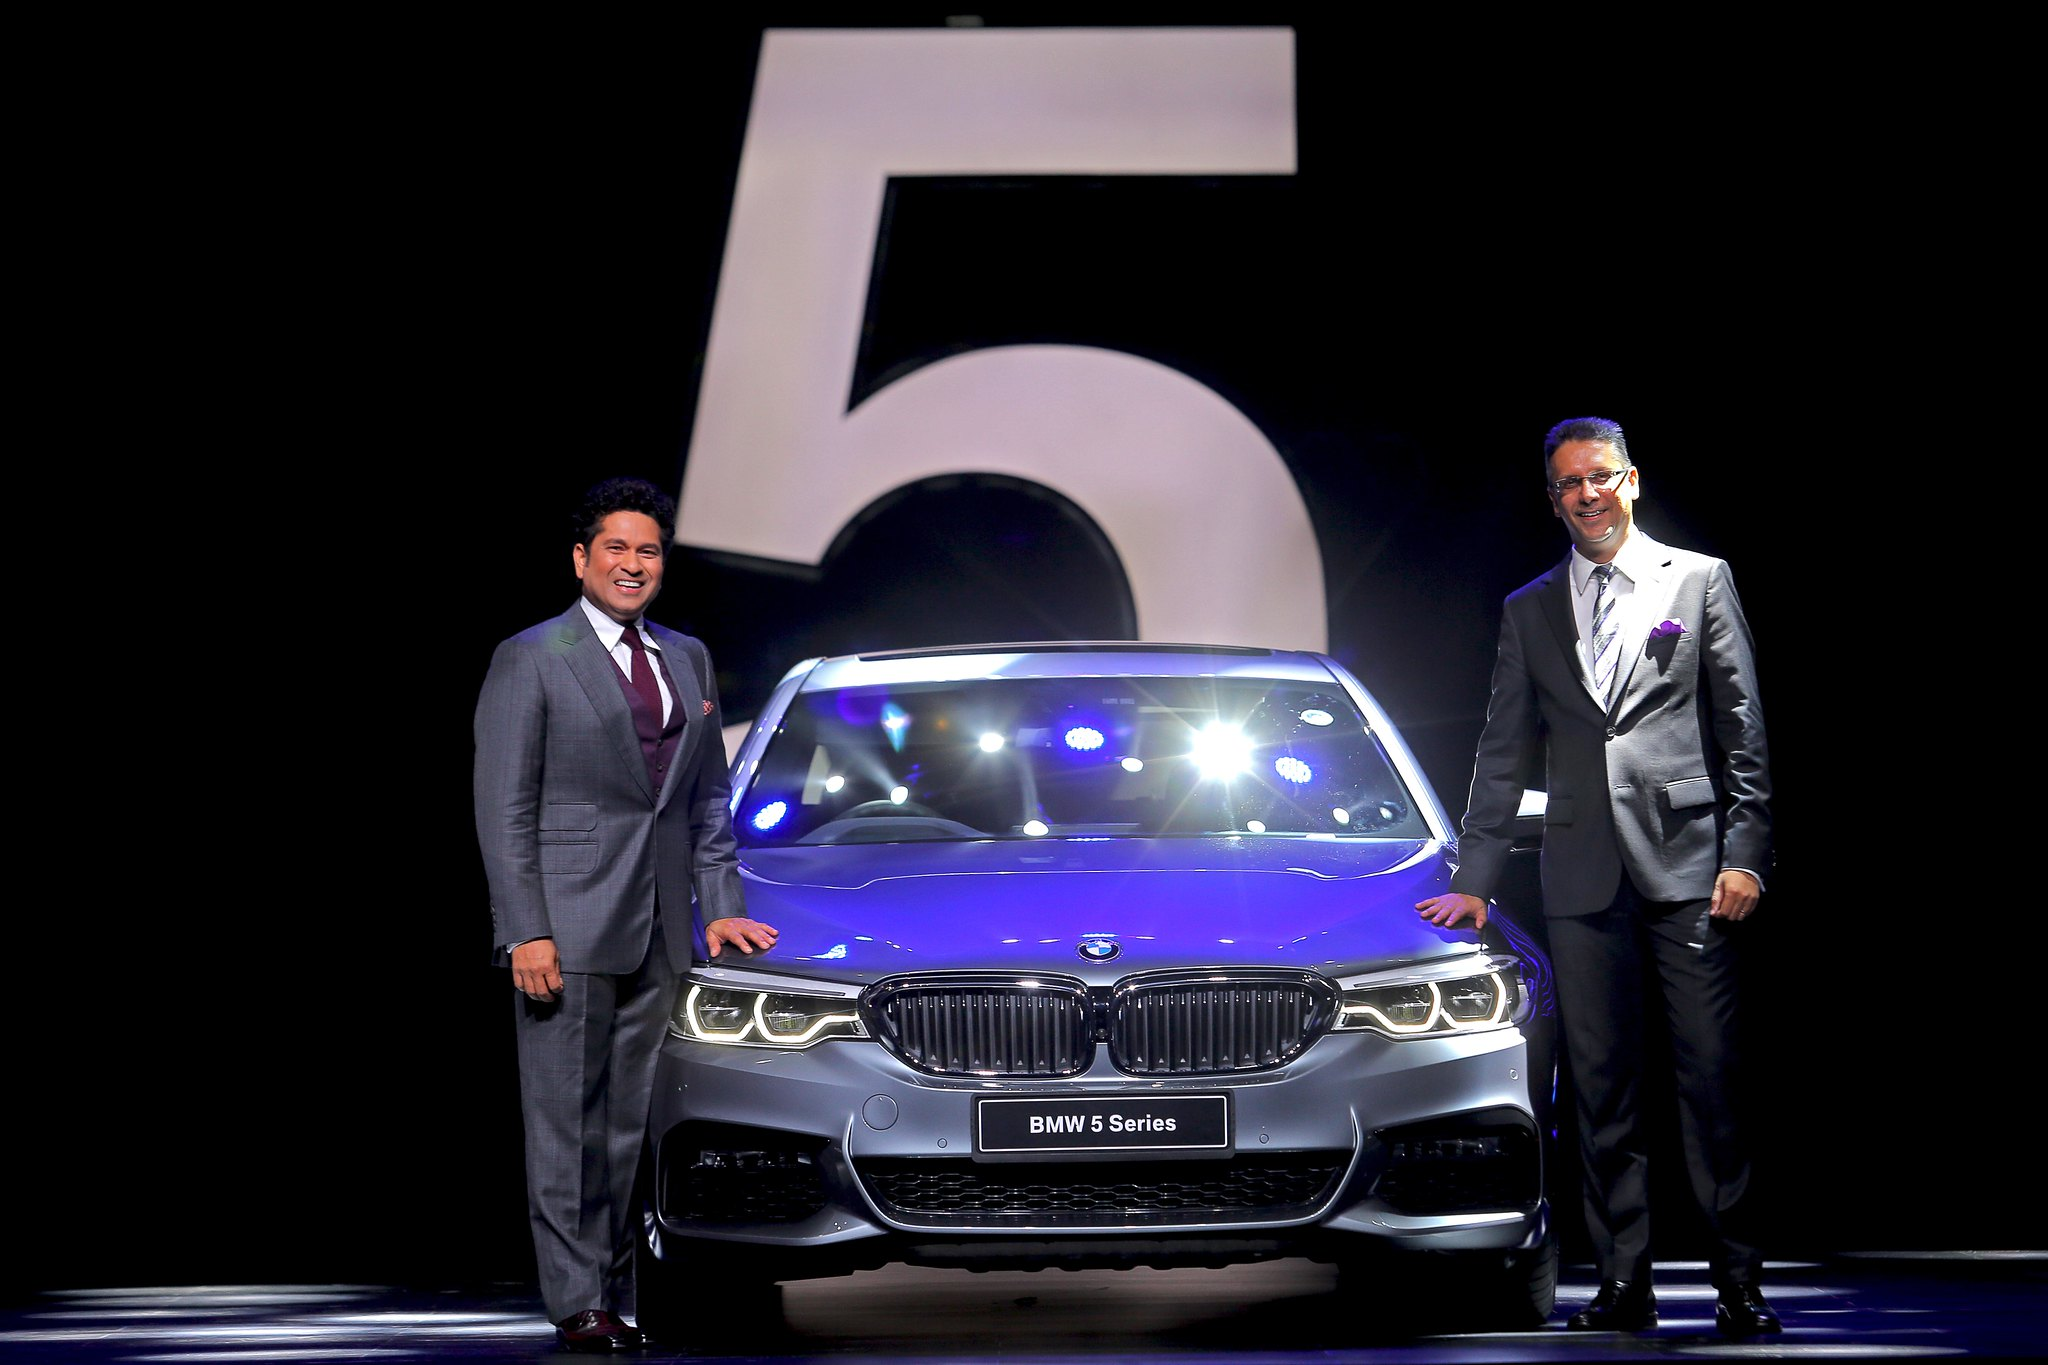 (L-R) Mr. Sachin Tendulkar and Mr. Vikram Pawah, President, BMW India with the all-new BMW 5 Series_a